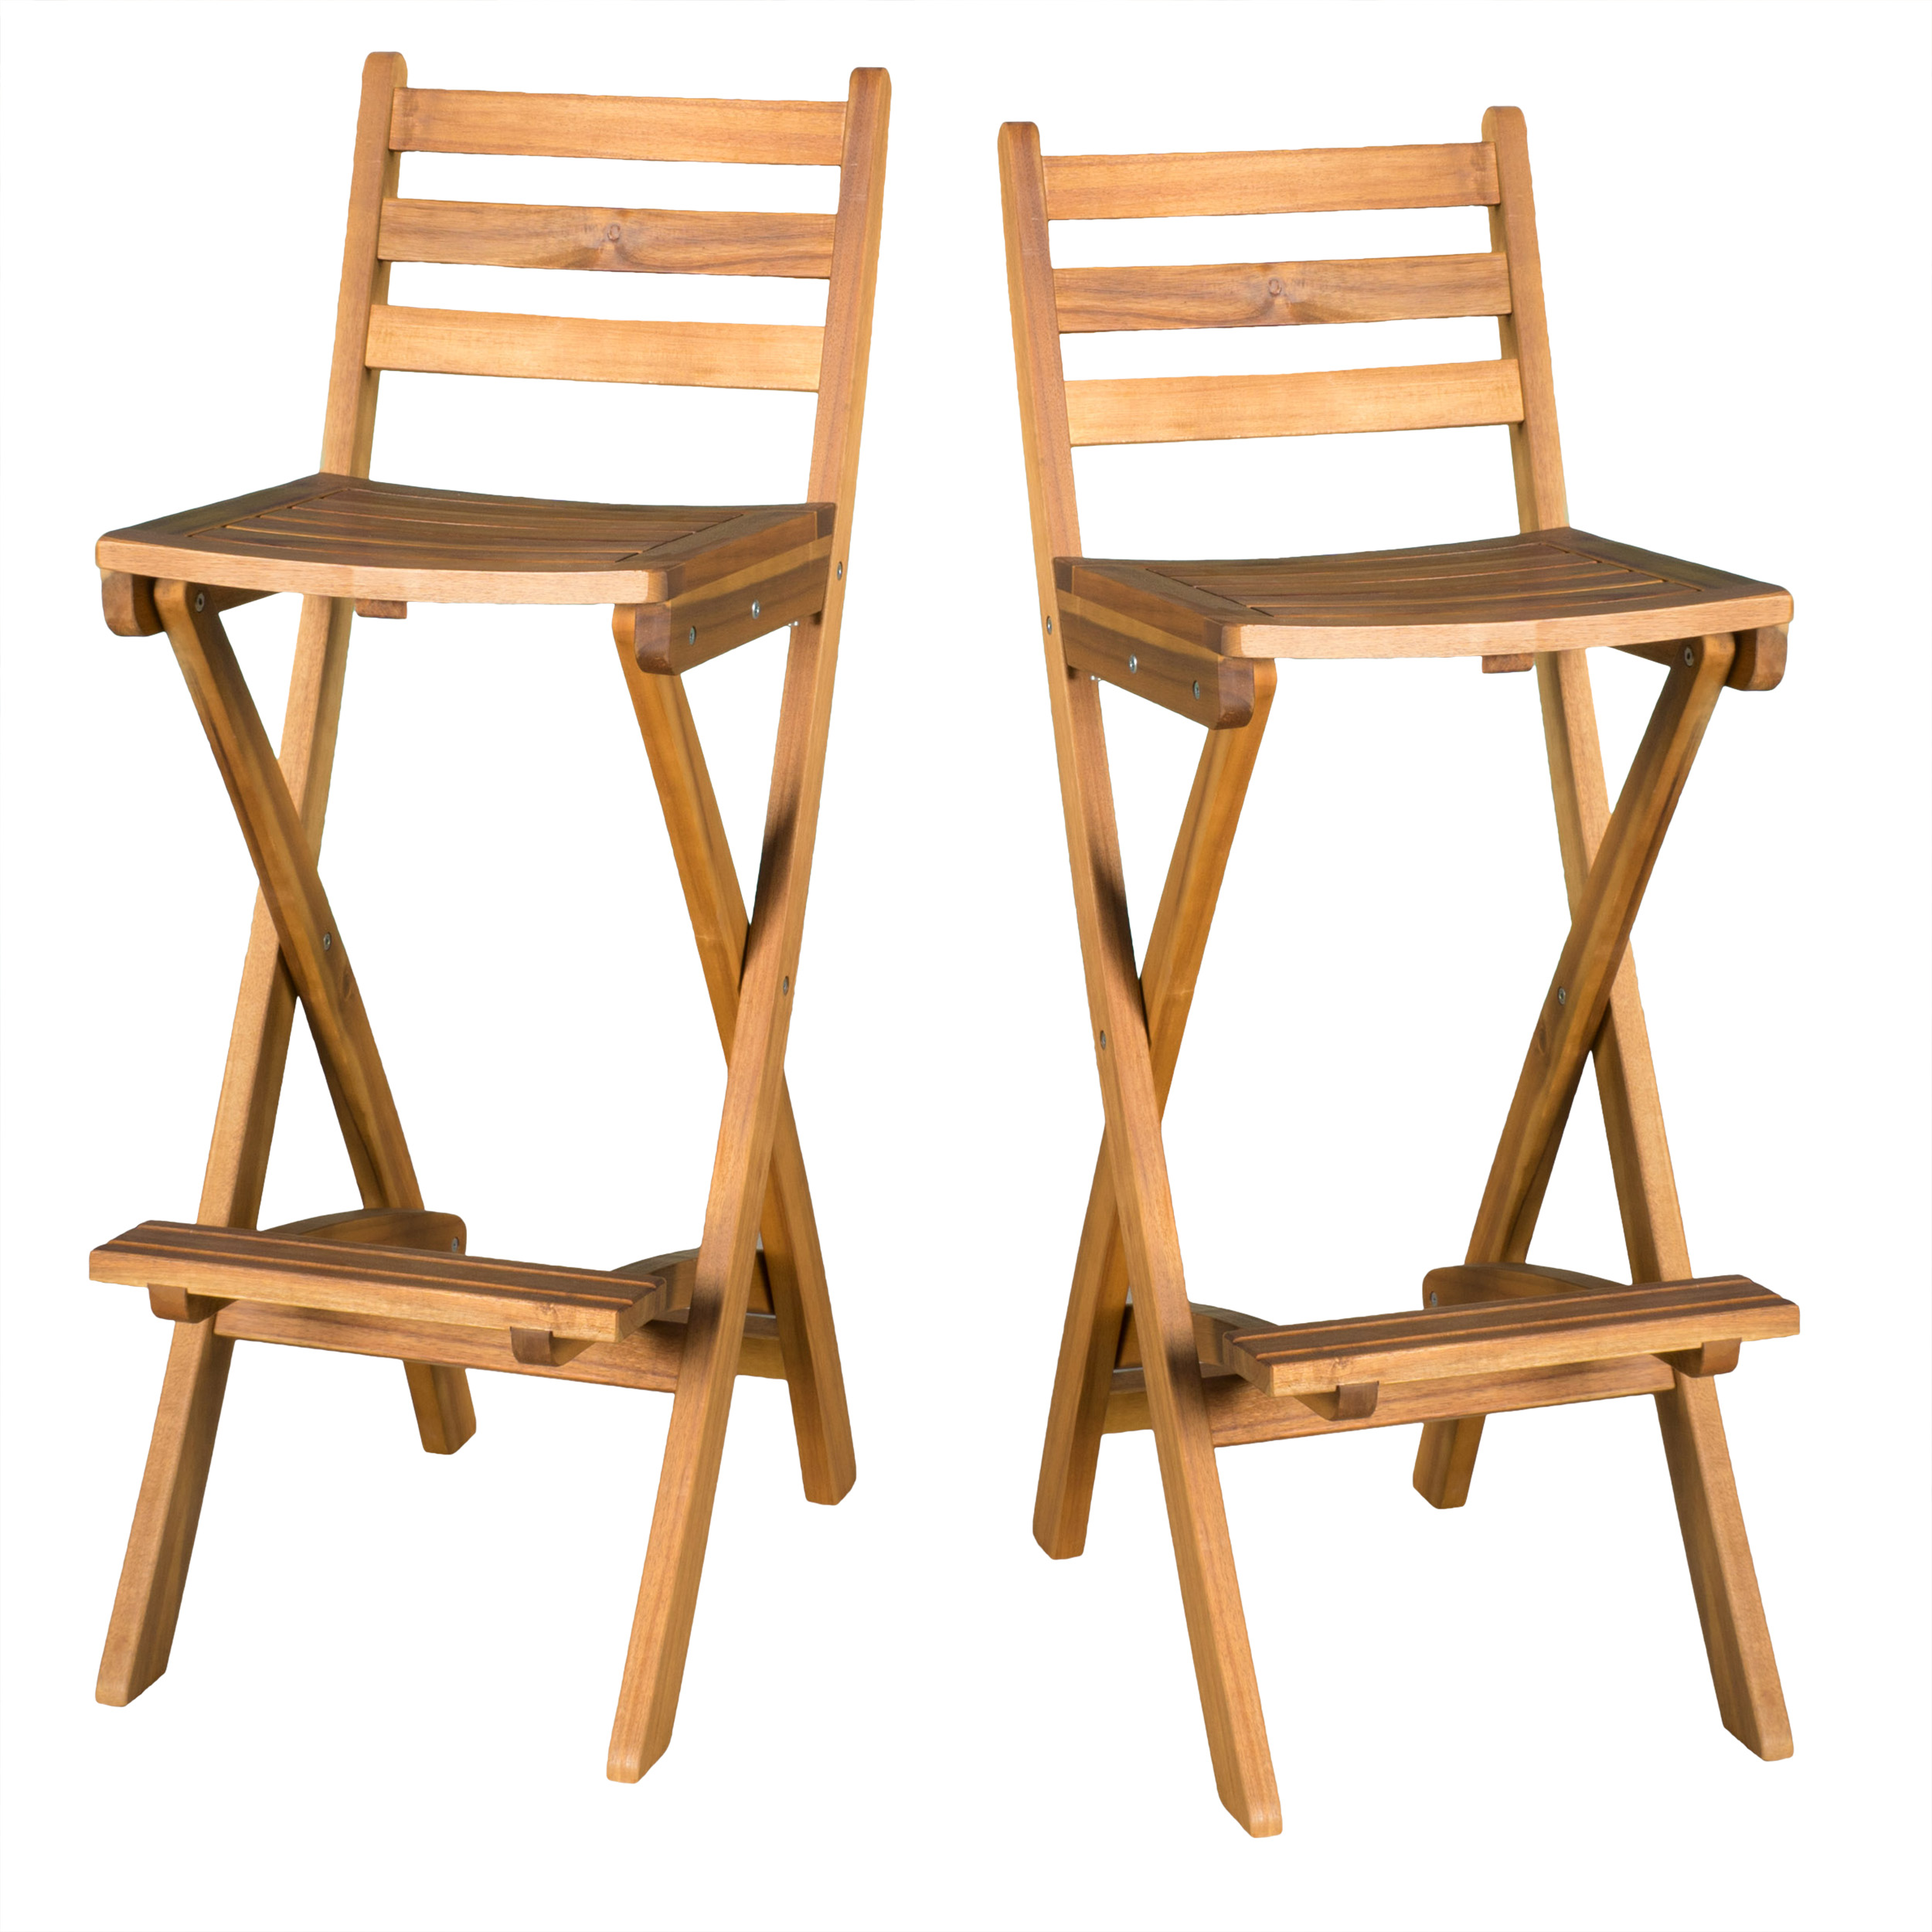 "Milano Outdoor 31"" Acacia Wood Bar Stool, Set of 2"